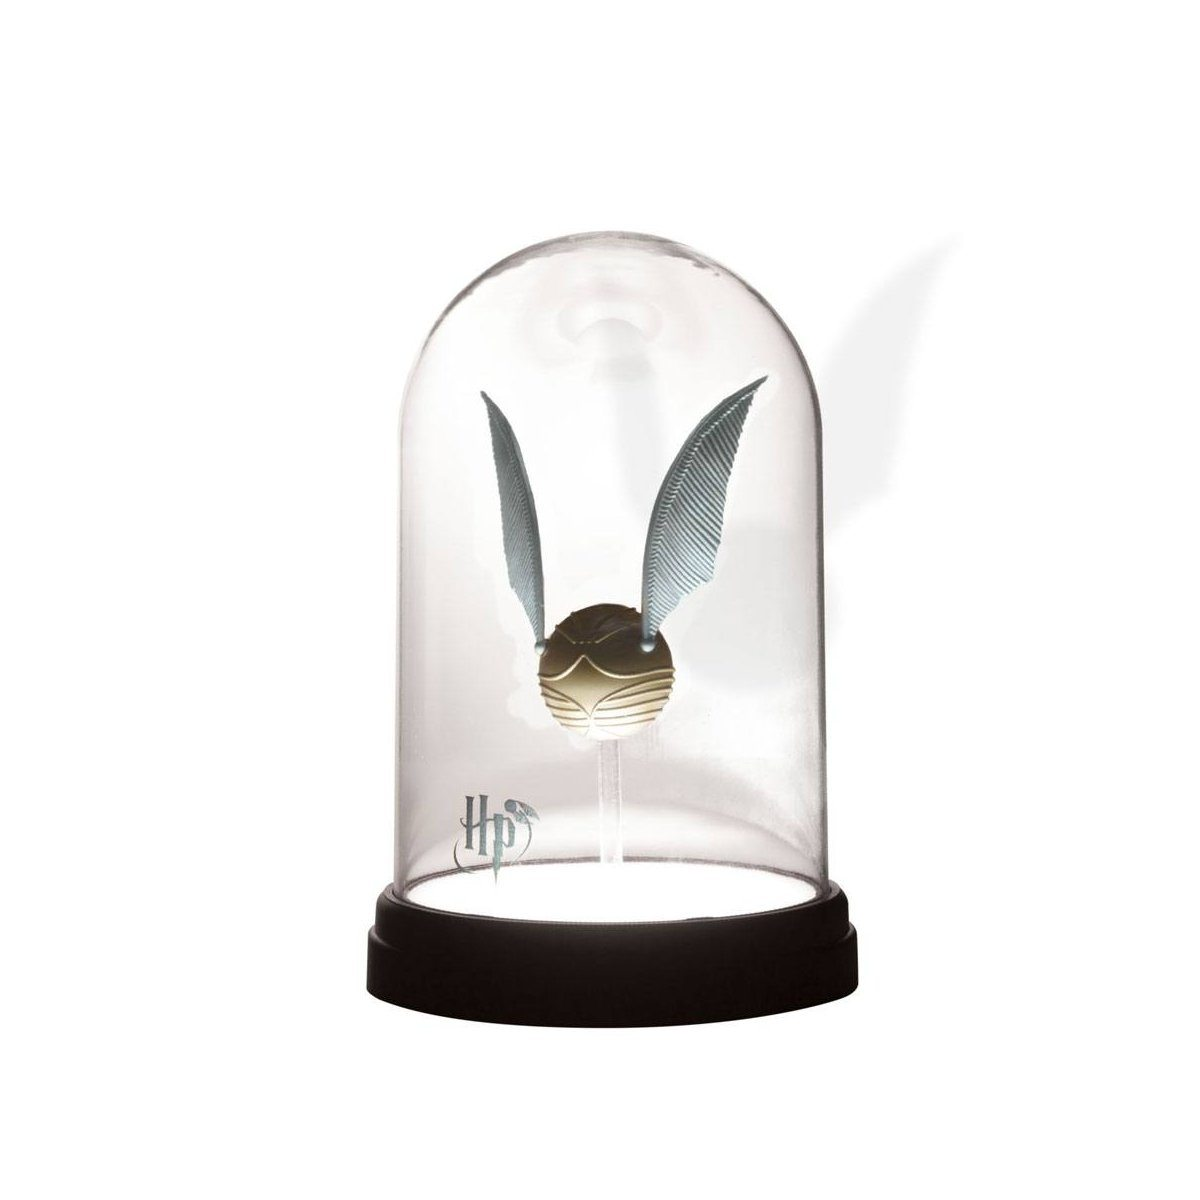 LAMPE DE BUREAU VIF D'OR - HARRY POTTER la boutique du sorcier